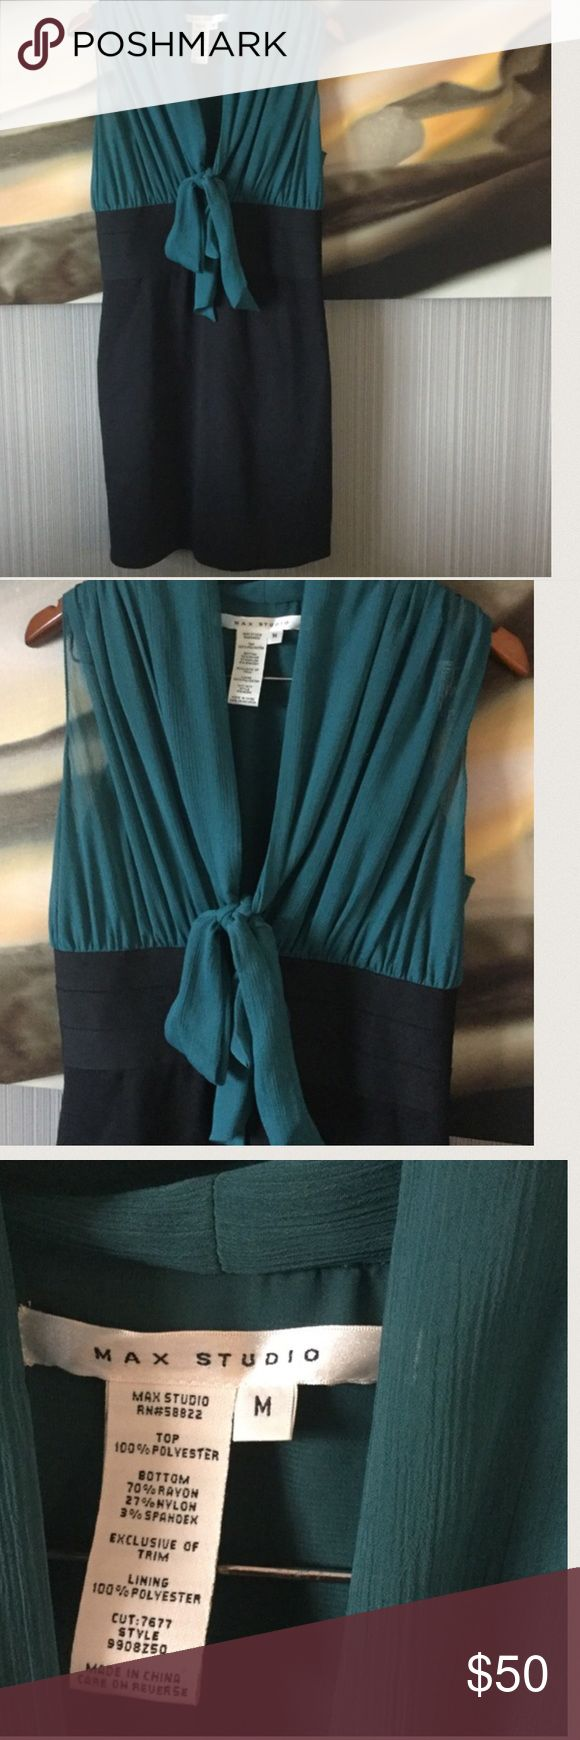 Teal and Black Dress with Cute Tie Feature Teal sheer top with black bottom dress. The top have a built in Cami. Banded waist for shape definition. 37 1/2 inches flat. JUST ADD BOOTS AND BLACK JACKET to be fall and winter ready! Max Studio Dresses Midi